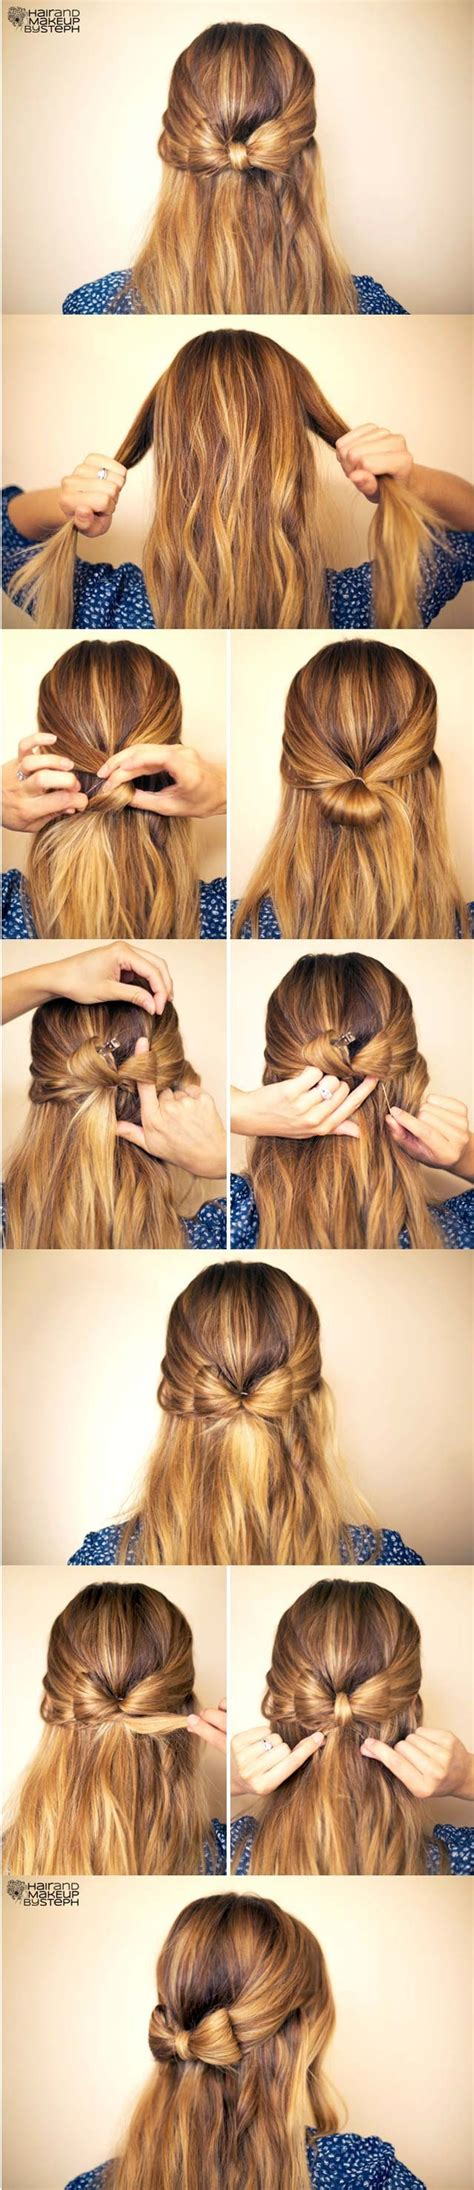 Pretty Hairstyles For School Step By Step by Easy Hairstyles For Hair Step By Step Hairstyles